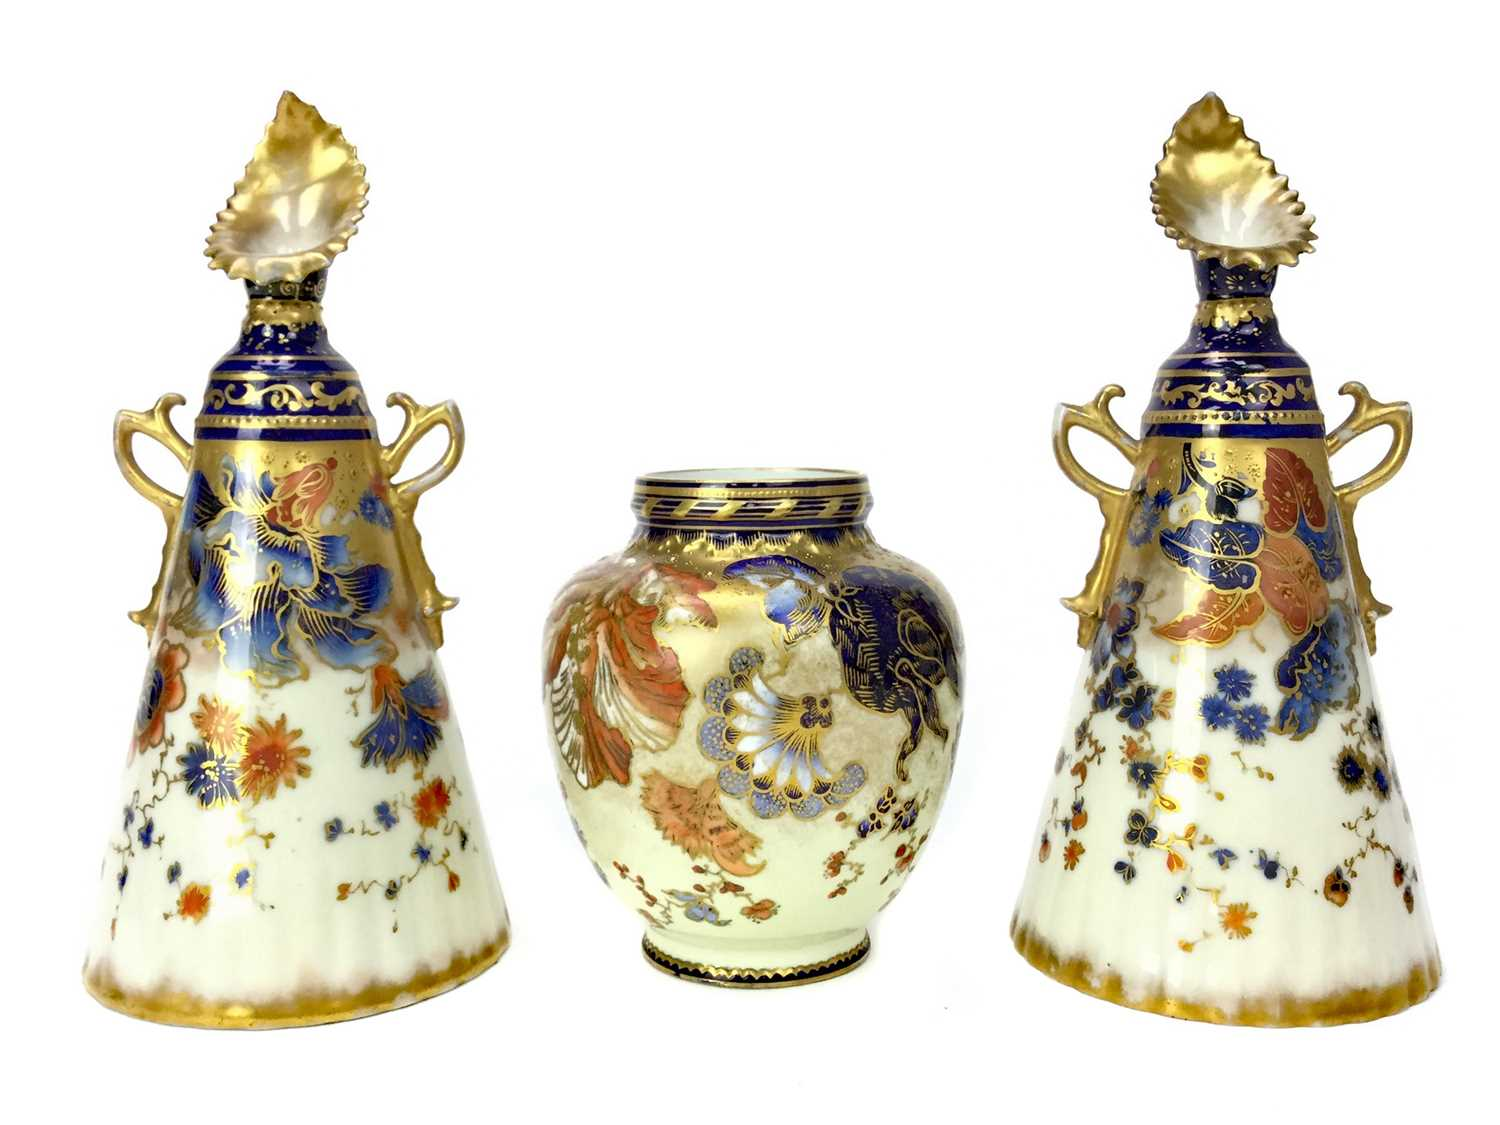 Lot 1044 - A PAIR OF NAUTILUS PORCELAIN CONICAL VASES ALONG WITH A CROWN DERBY VASE